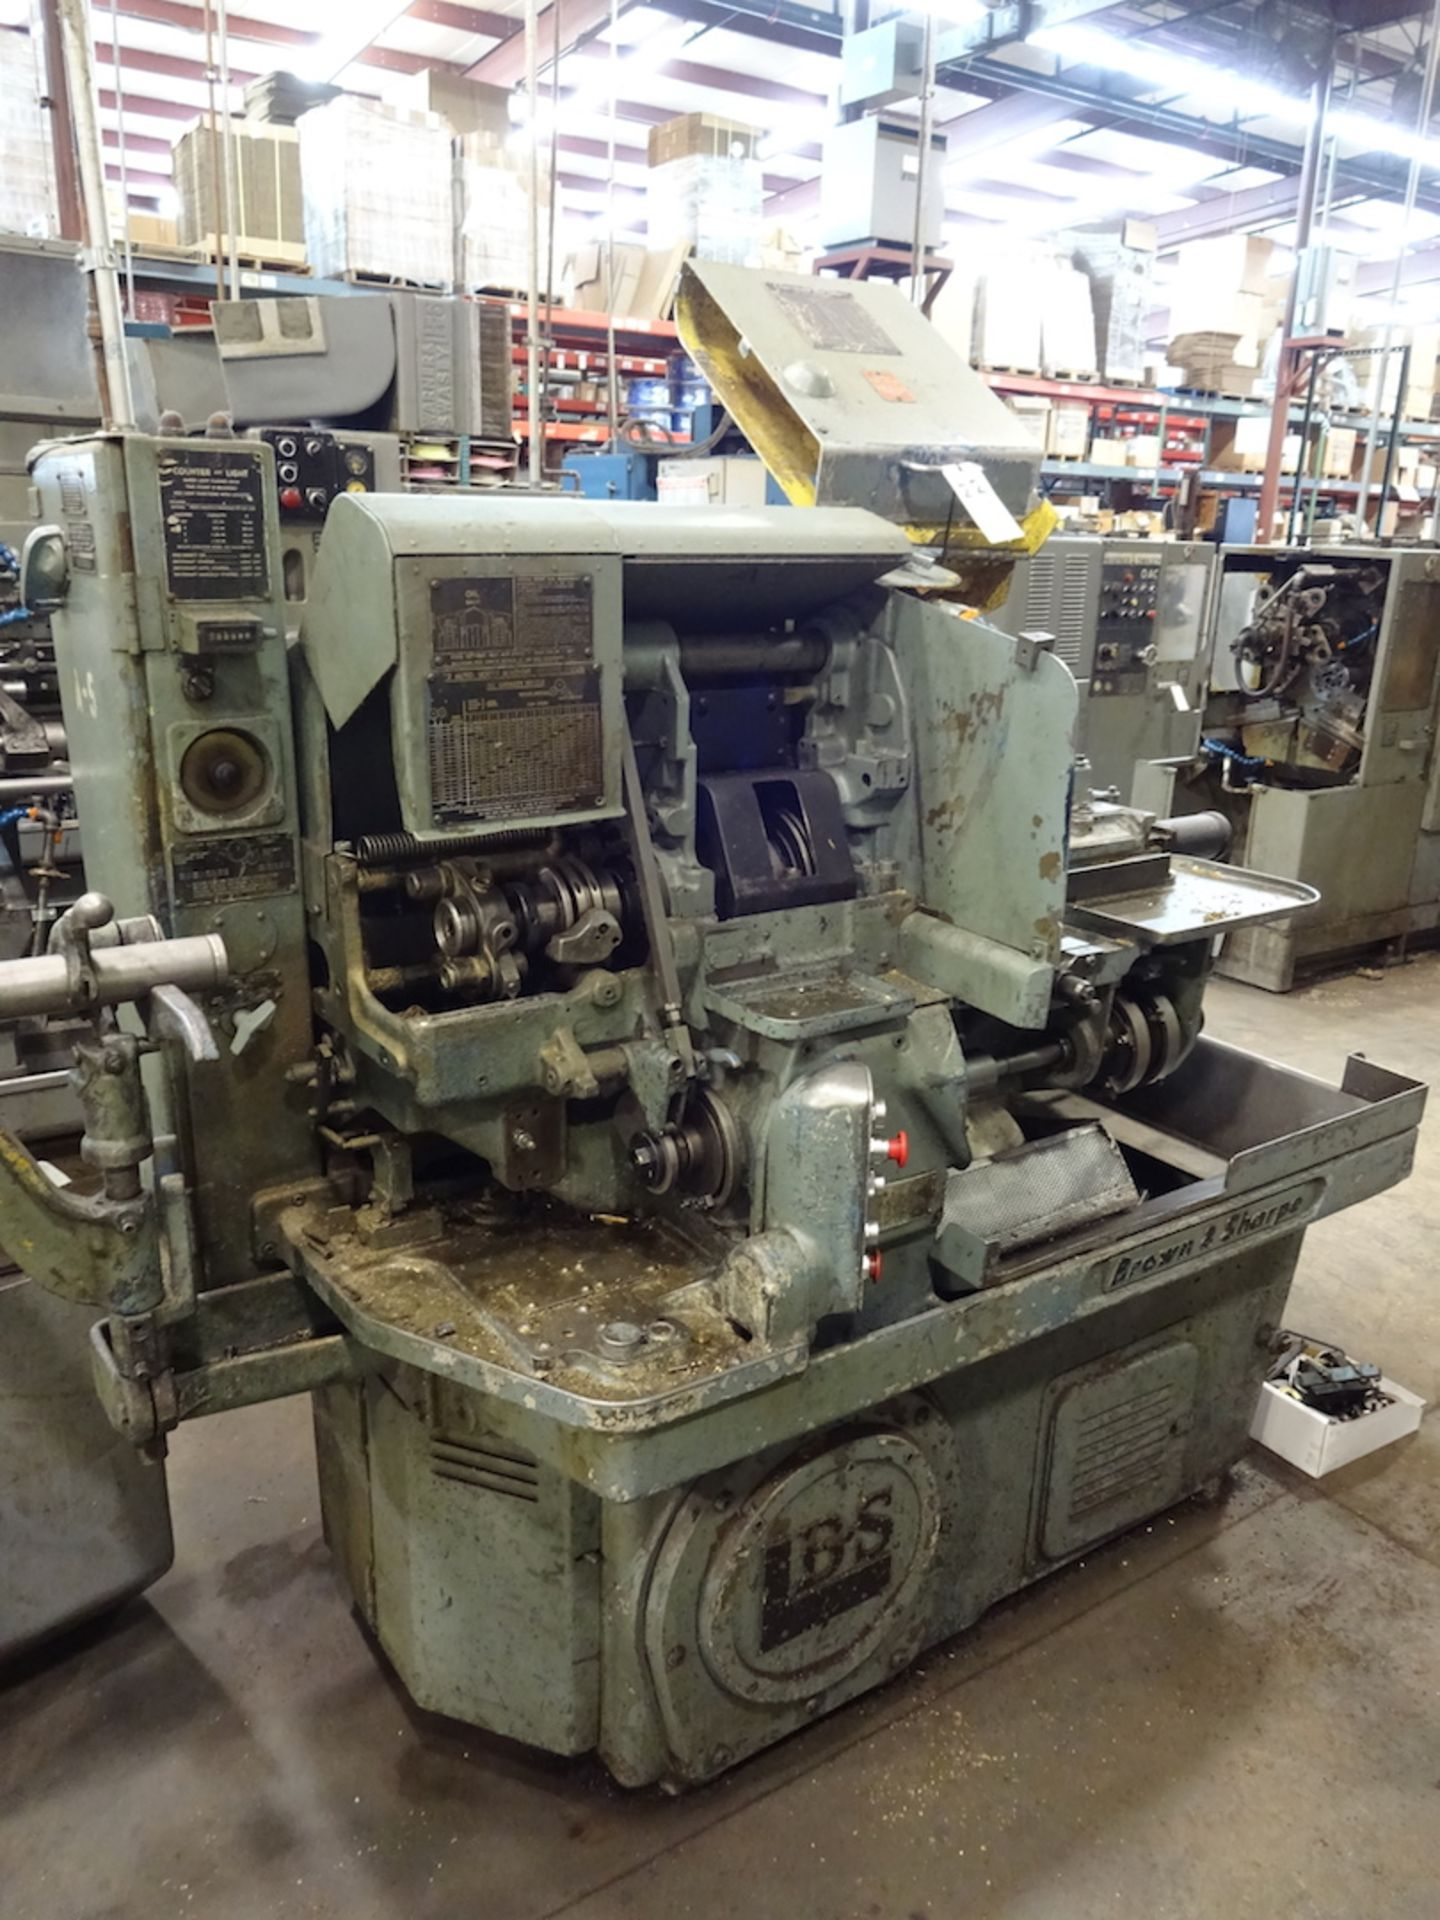 Lot 33 - Brown & Sharpe 1-1/2 in. Model 2 Single-Spindle Push Button Automatic Screw Machine, S/N 542-2-